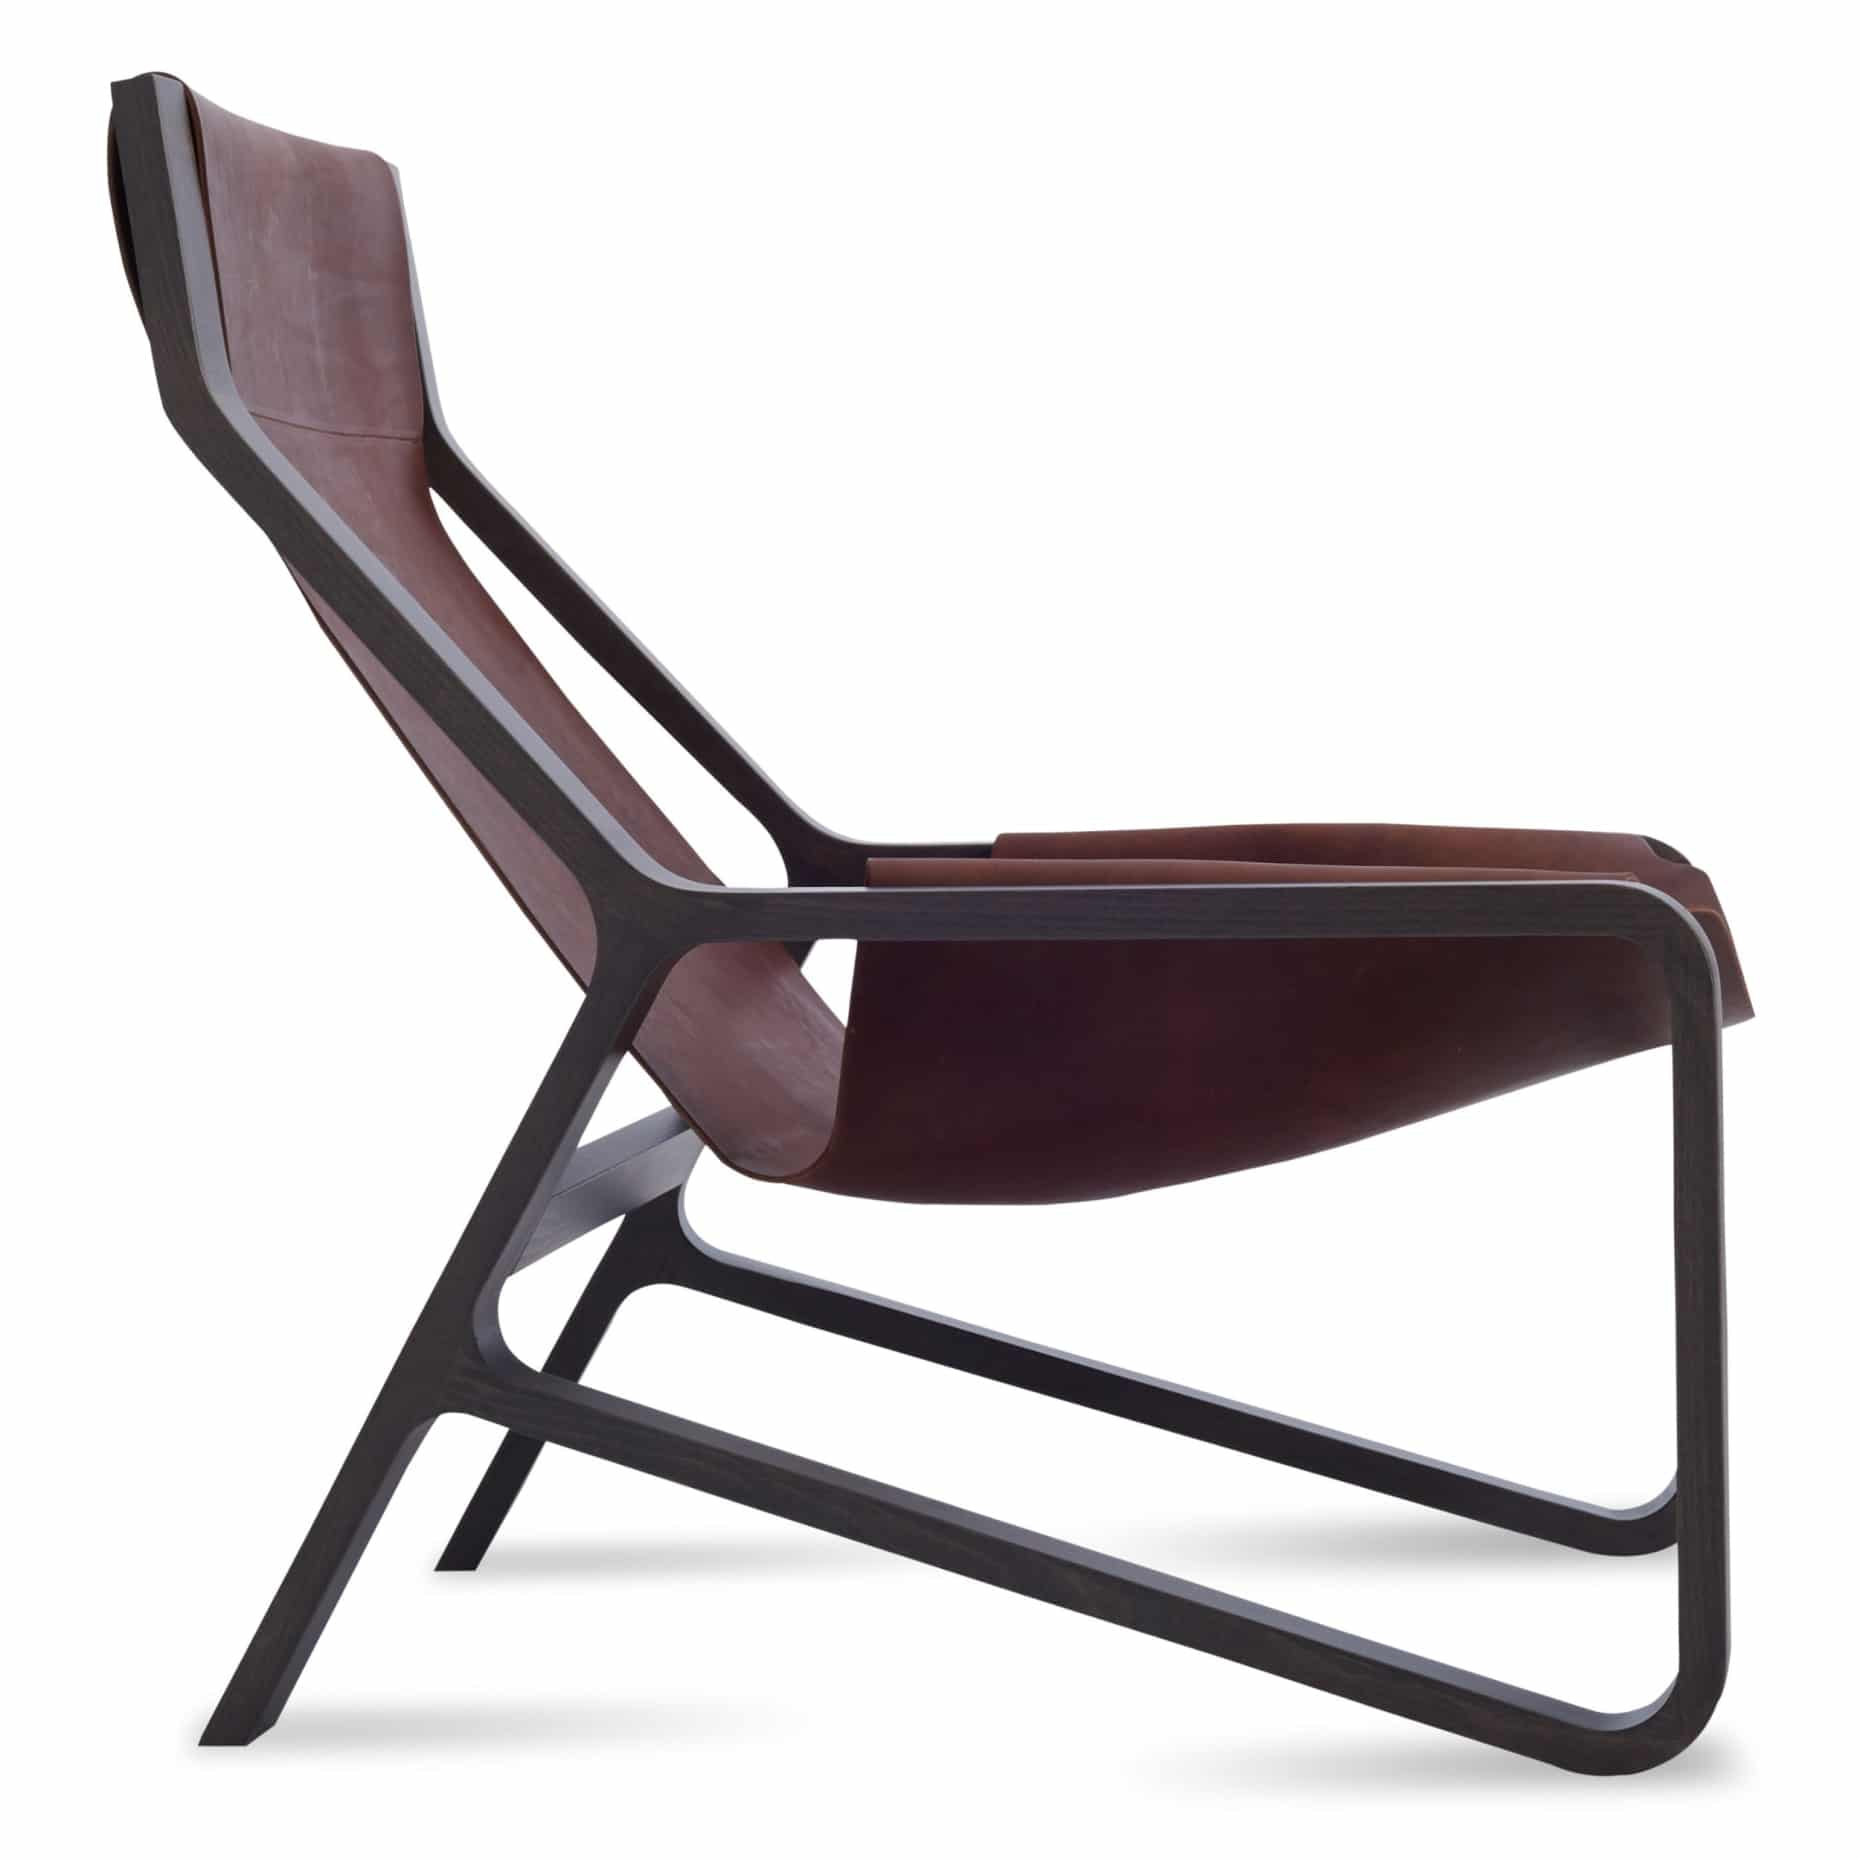 tr1 lchair sk side toro lounge chair chocolate smoke